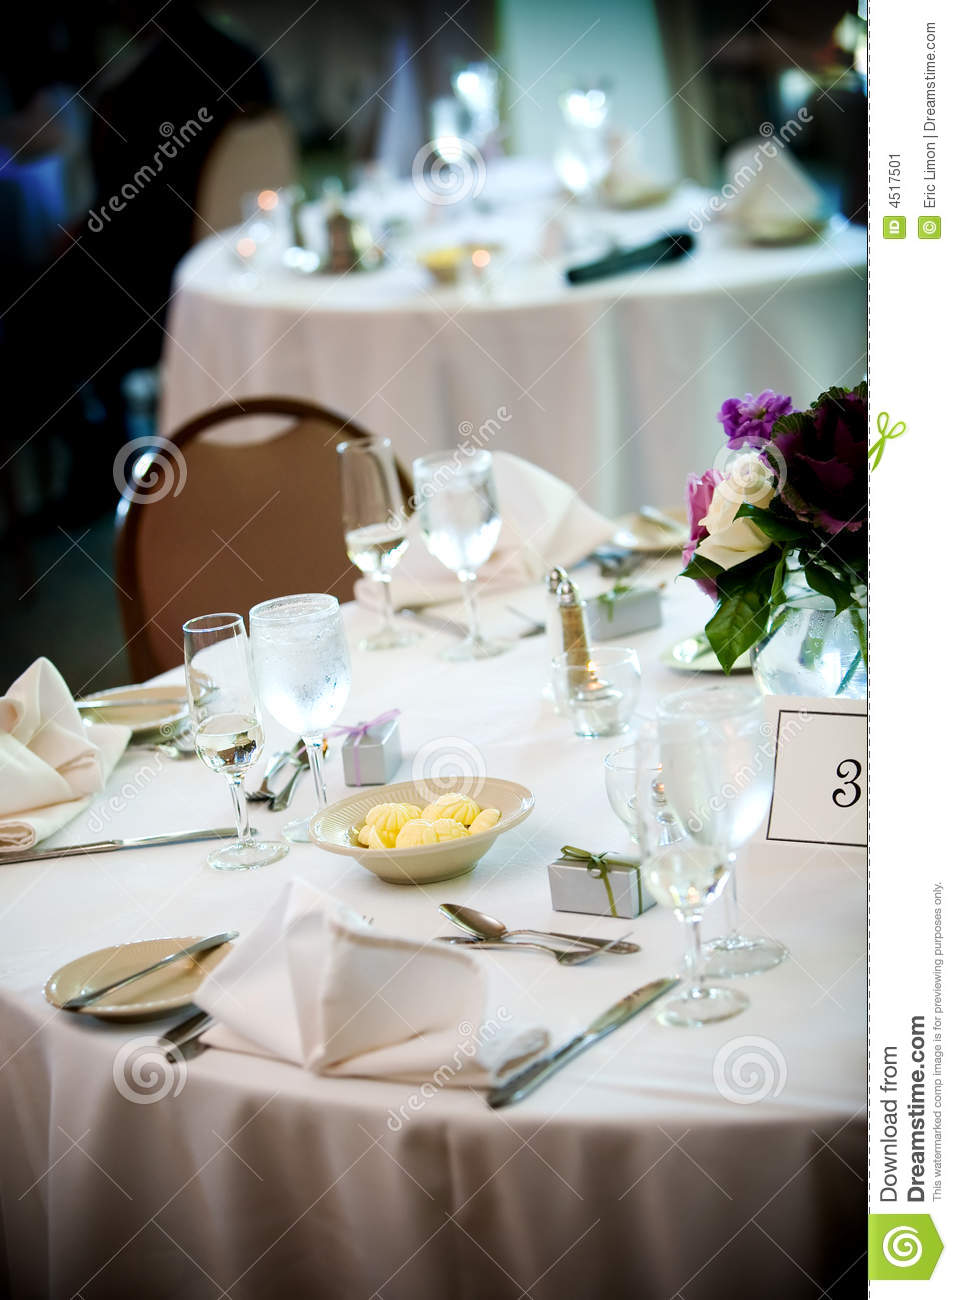 Table set for fine dining stock image image 4517501 for Fine dining table setting